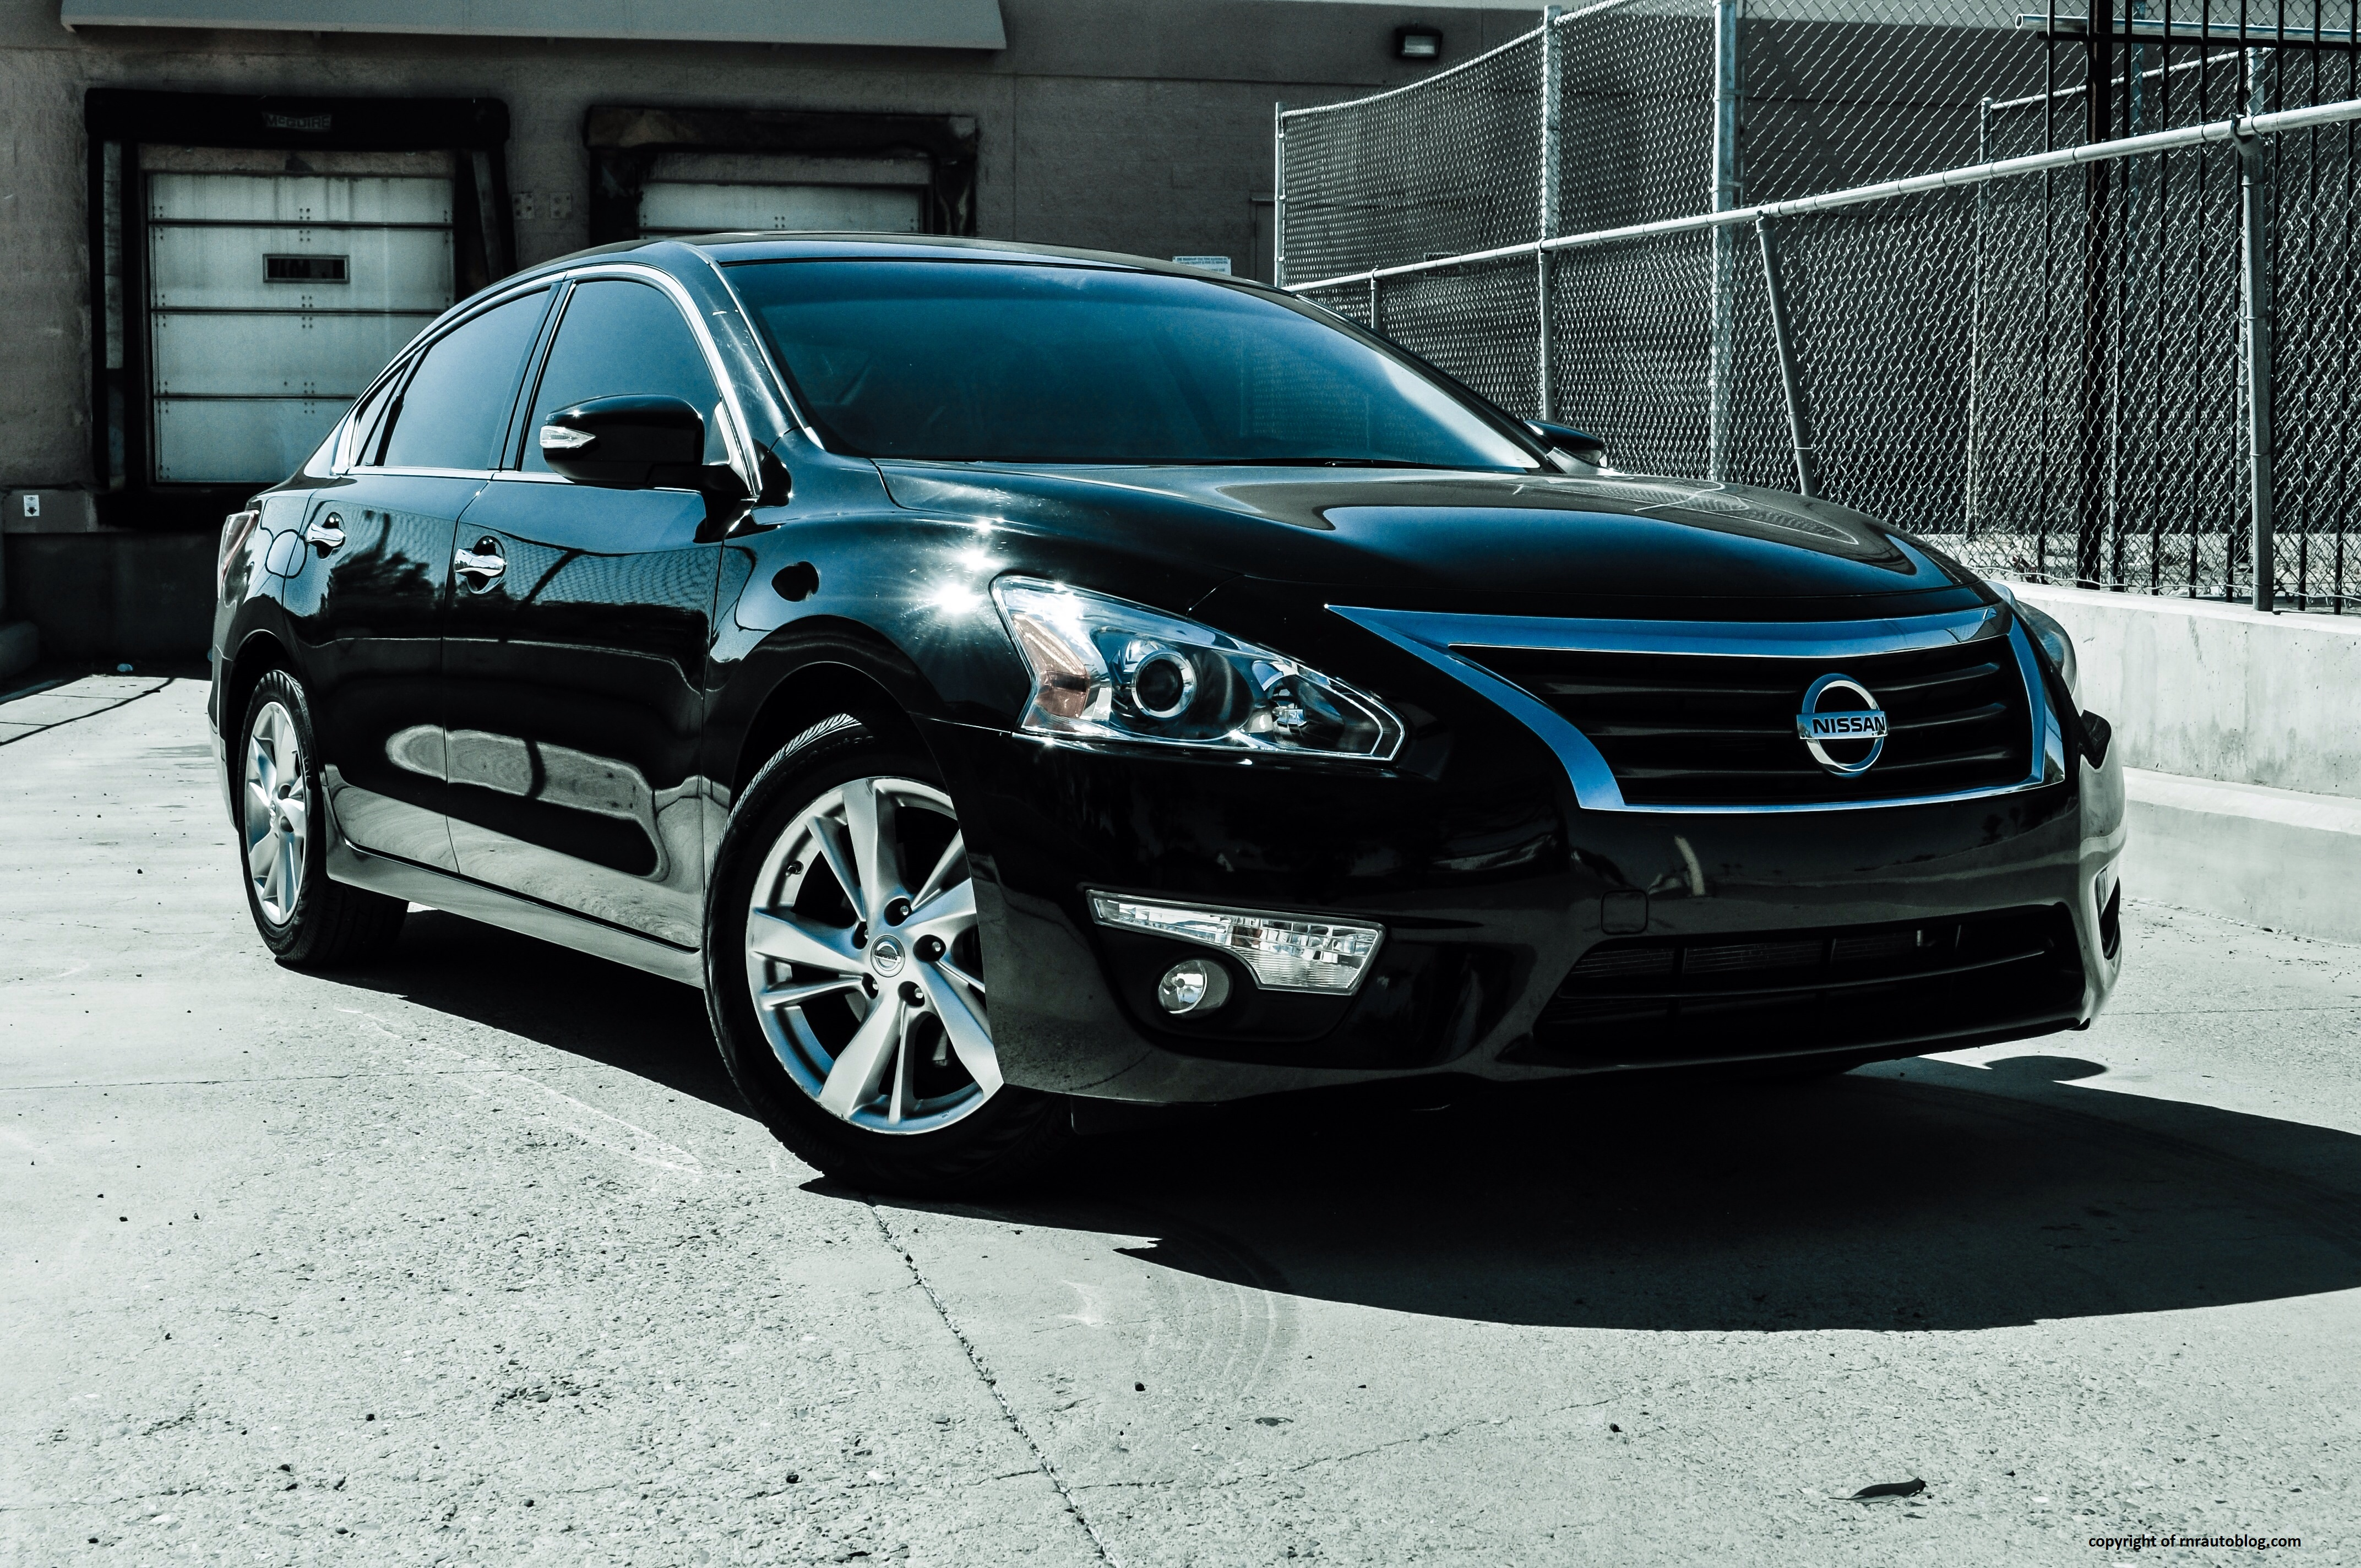 2013 Nissan Altima SL Teaser. Altima 1. Review Coming Soon!